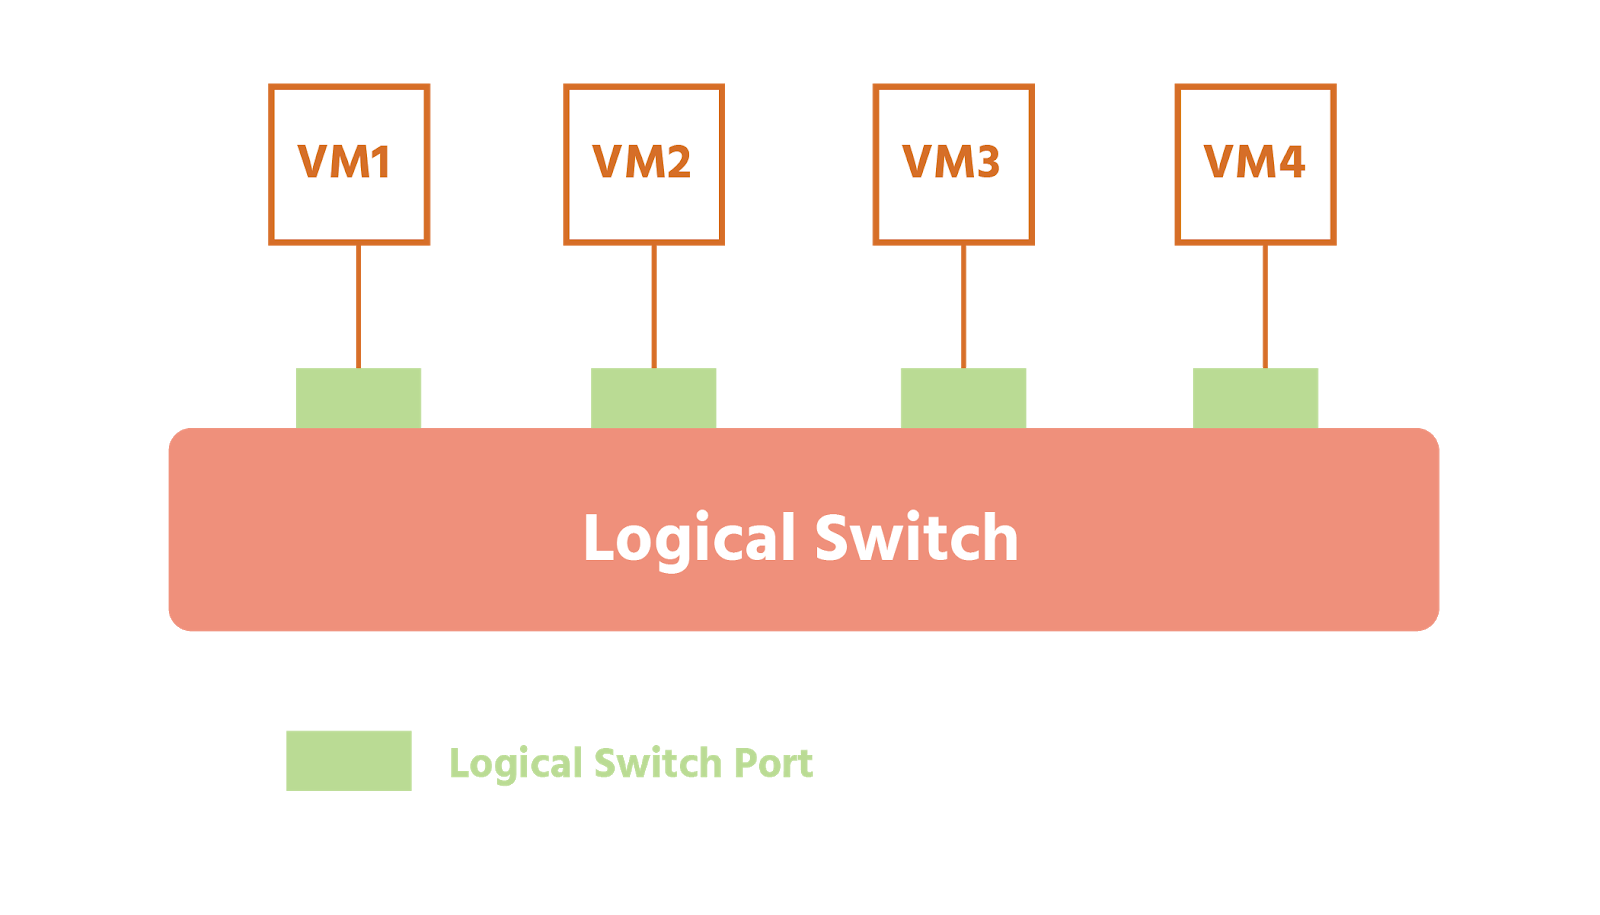 Four VMs are connected to a logical switch via four logical switch ports.